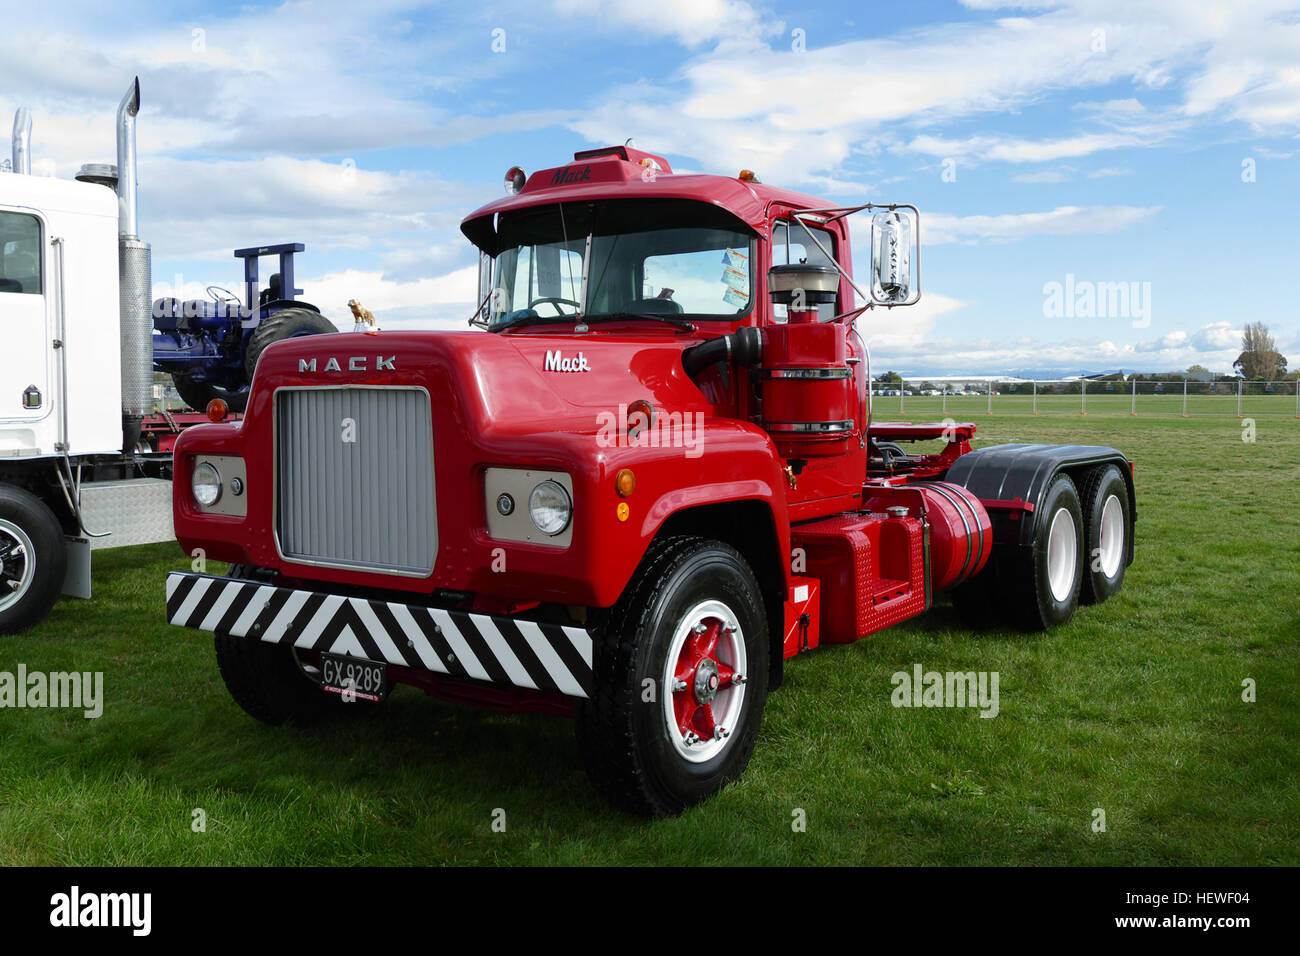 1973 Mack Tractor Truck : Christchurch truck show the mack r model was a class